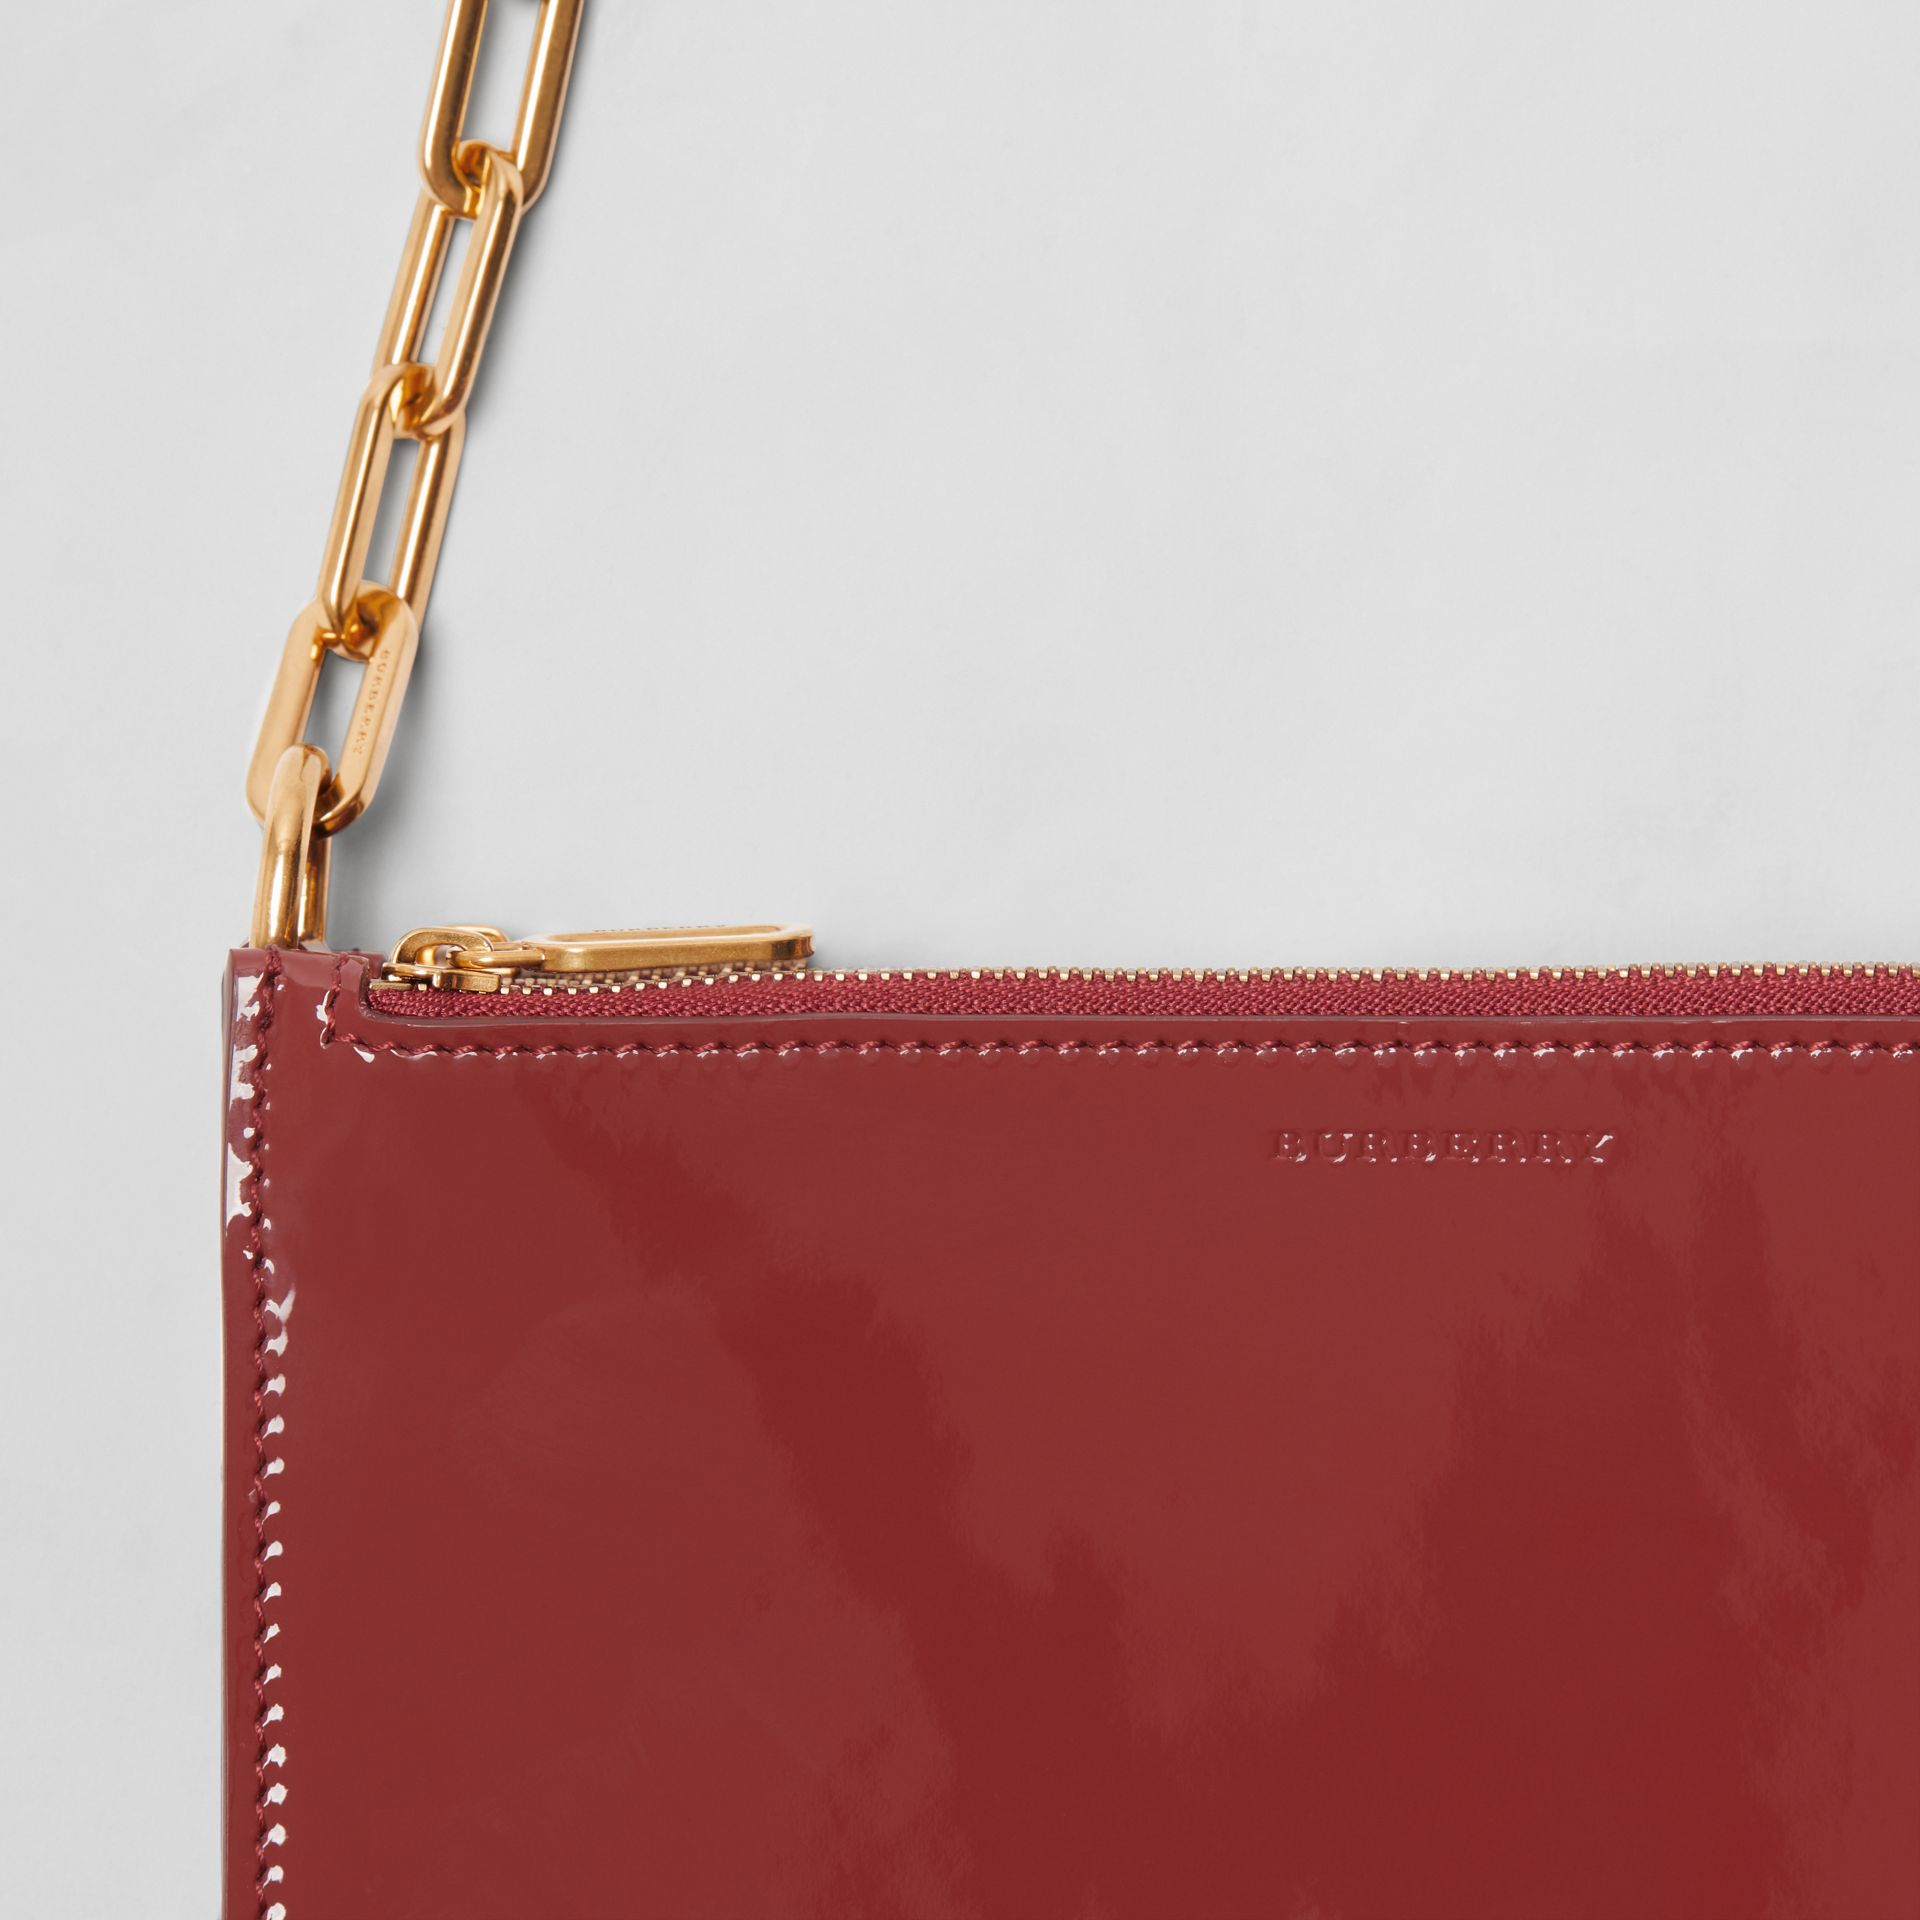 Triple Zip Patent Leather Crossbody Bag in Crimson - Women | Burberry Canada - gallery image 1